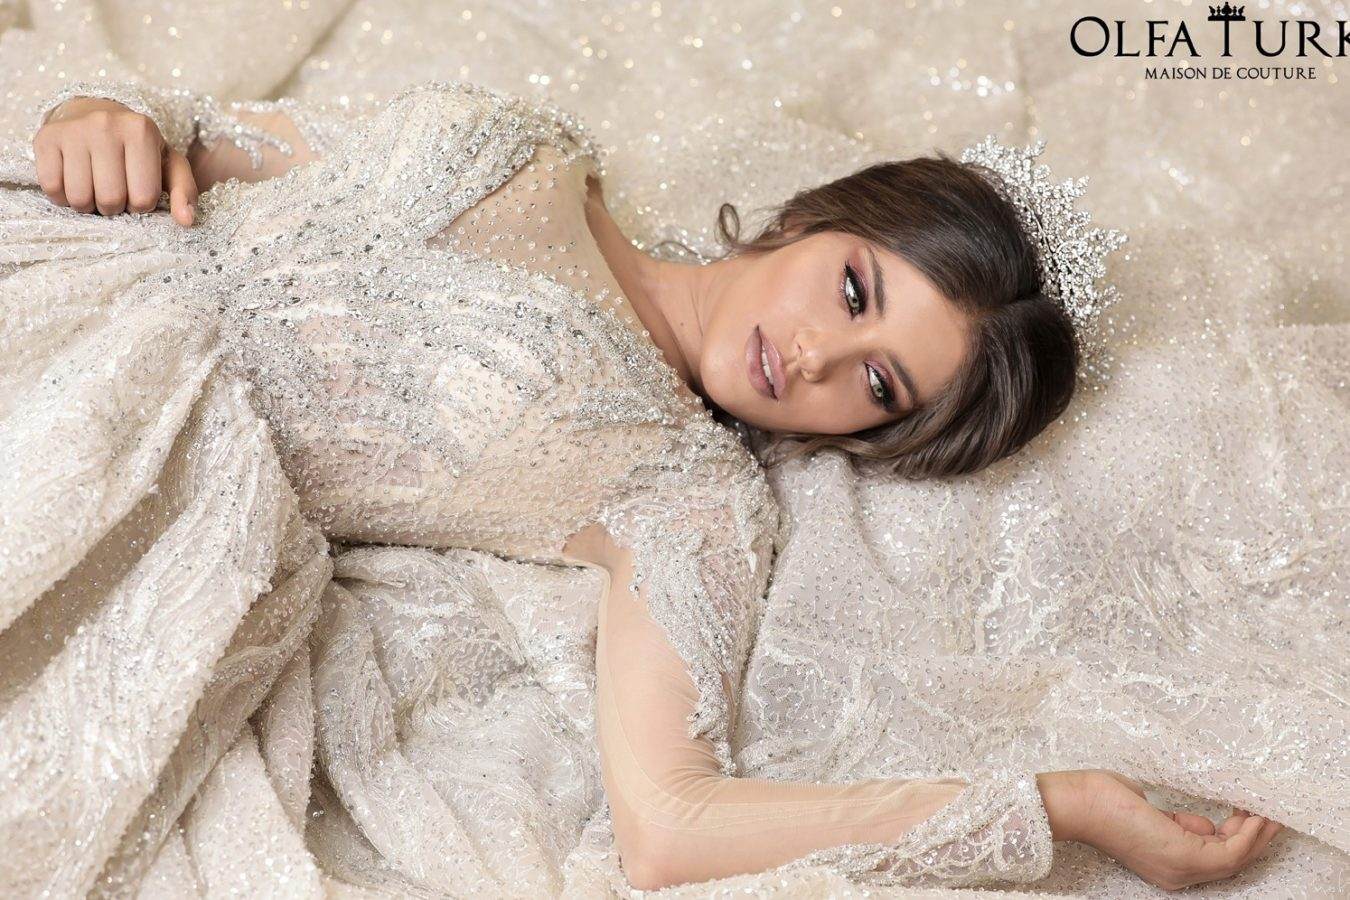 olfa-turki-bride